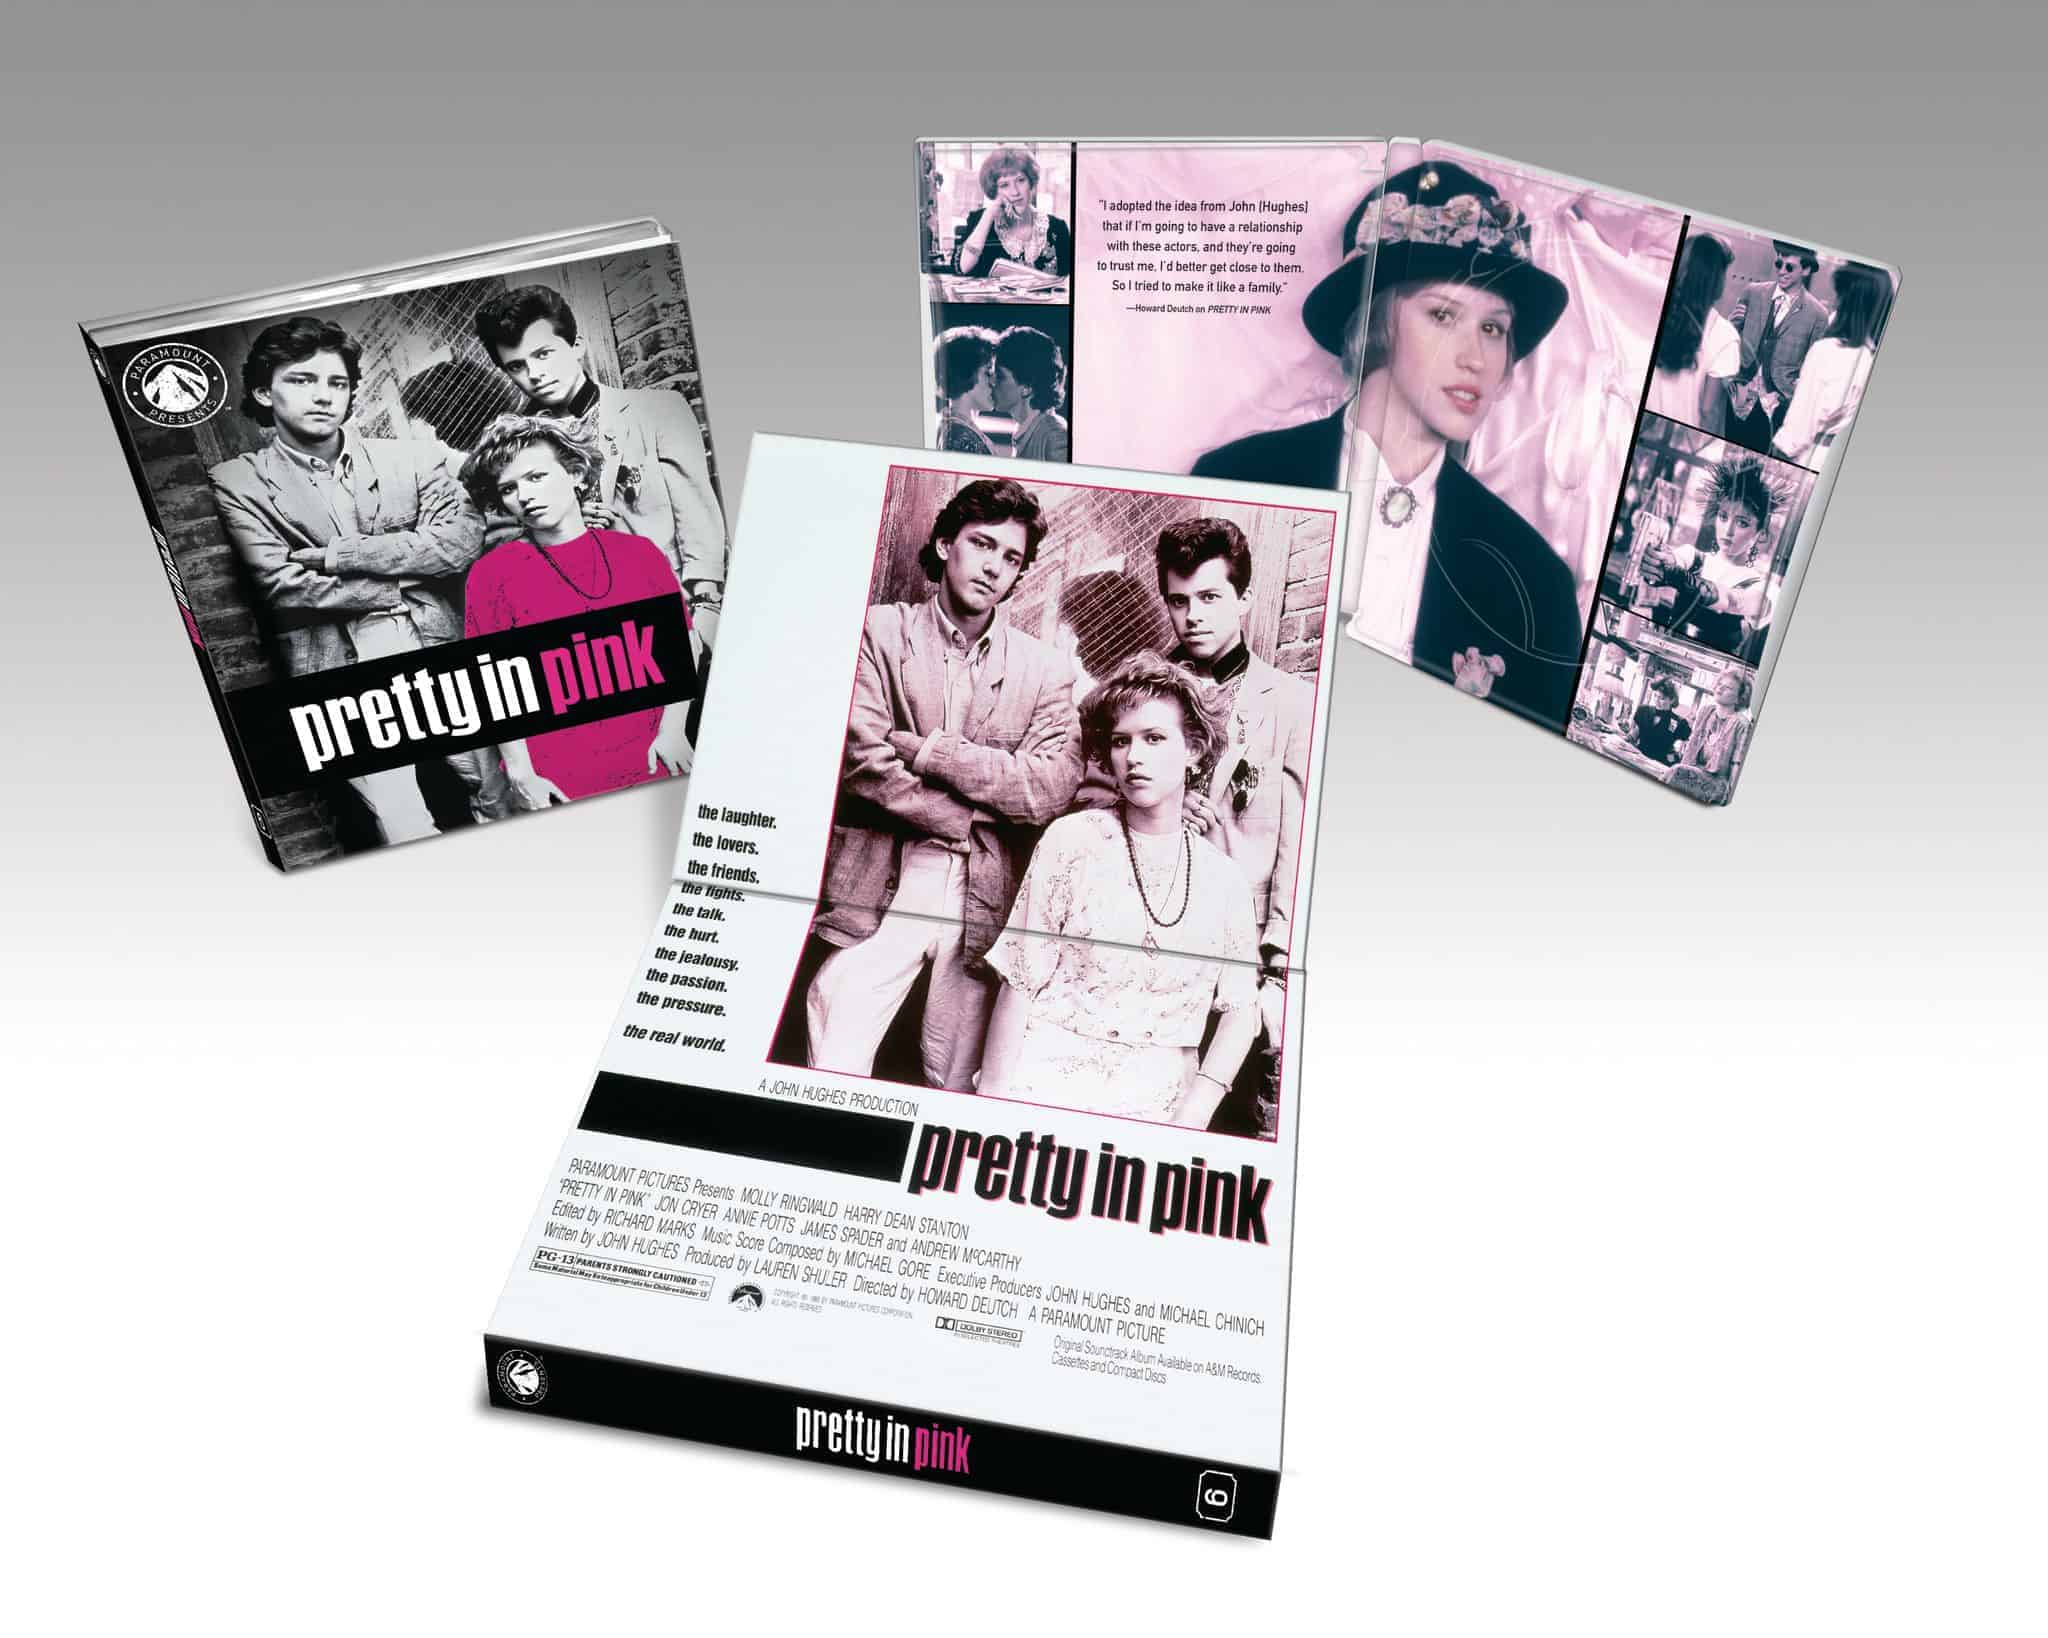 Pretty in Pink blu-ray home entertainment